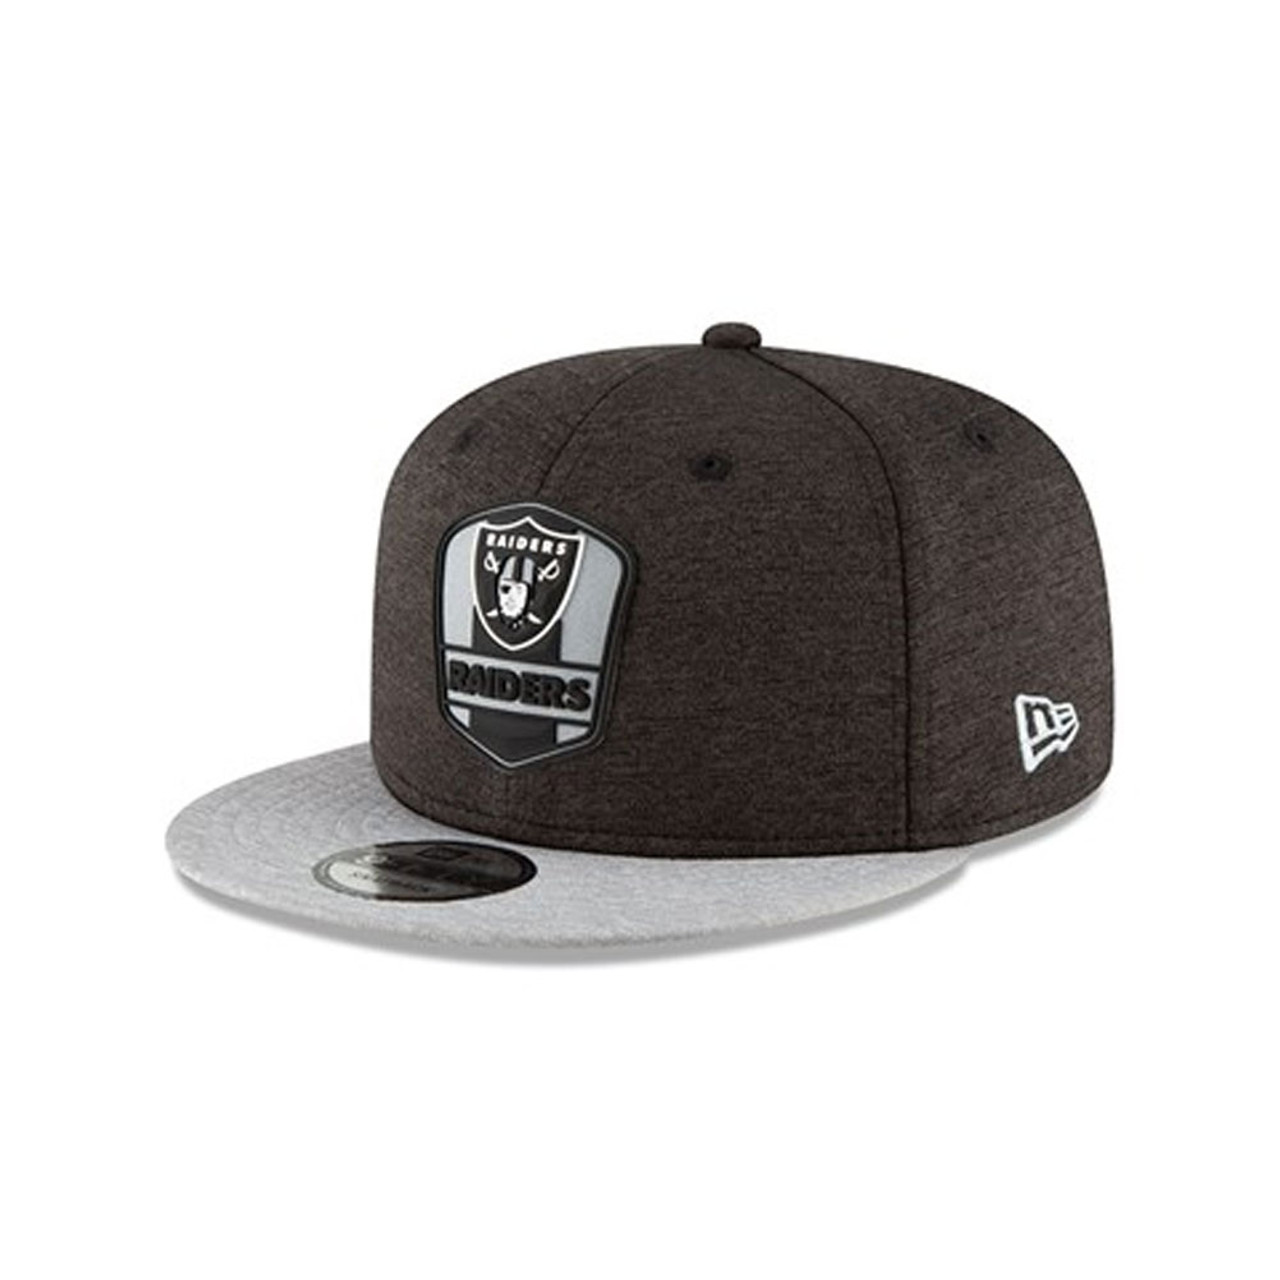 48367ec4fb2 NEW ERA Oakland Raiders 2018 sideline away 9fifty snapback cap ...